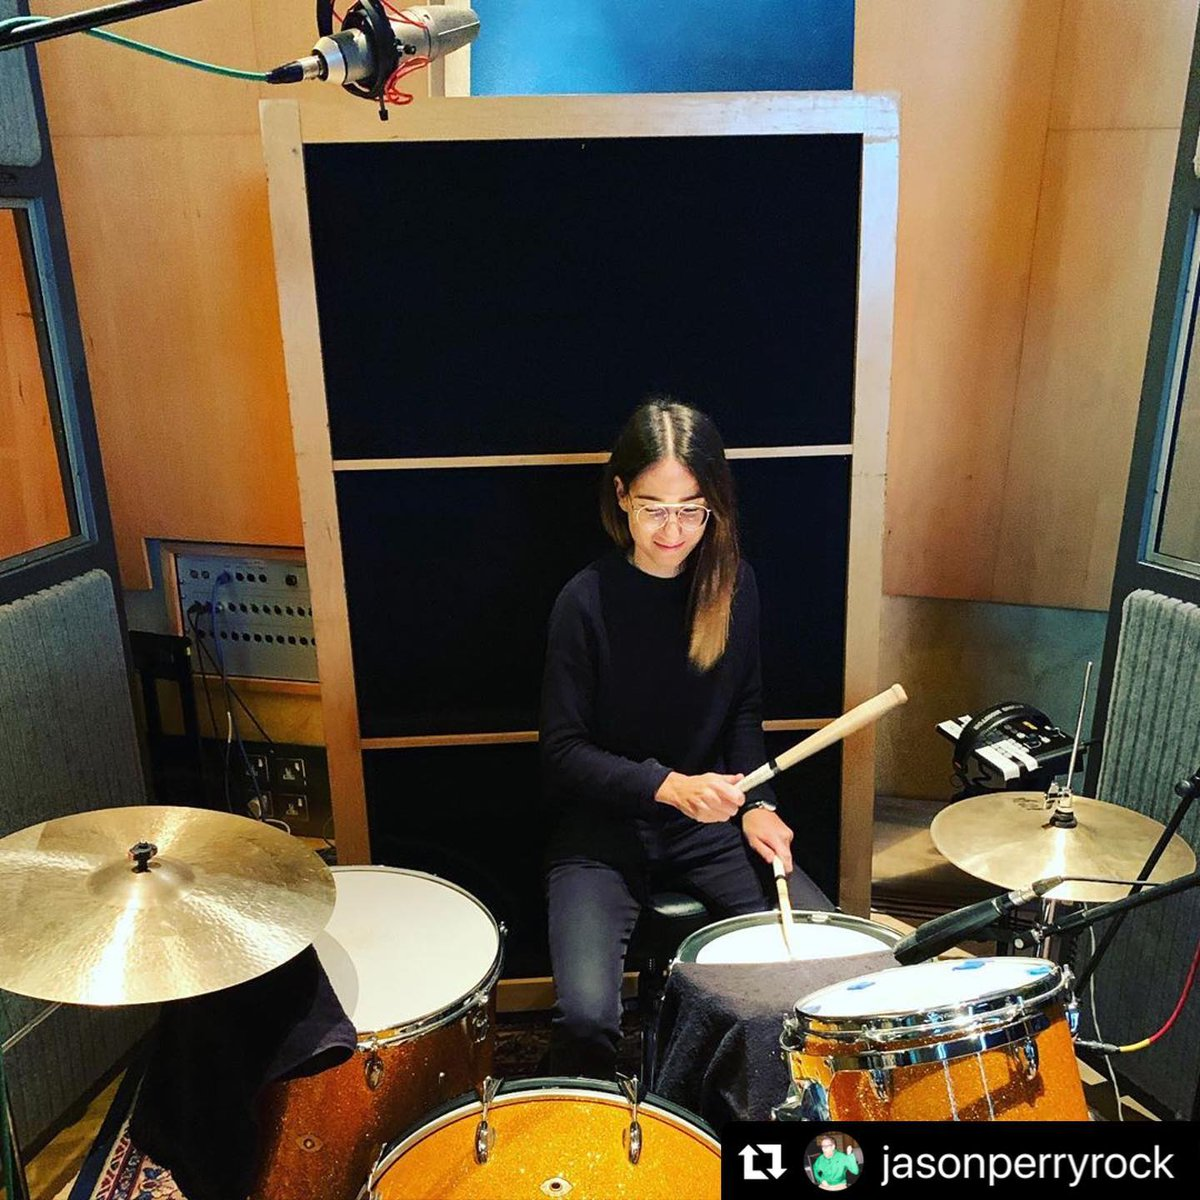 #Repost @JasonPerryrock  ・・・ 'We're gonna miss you @amandamerdzan and your engineering skills .. it's been a pleasure. and these drums you recorded sound amazing !Hurry back to us soon ! x' https://t.co/XD6rCYUYvi